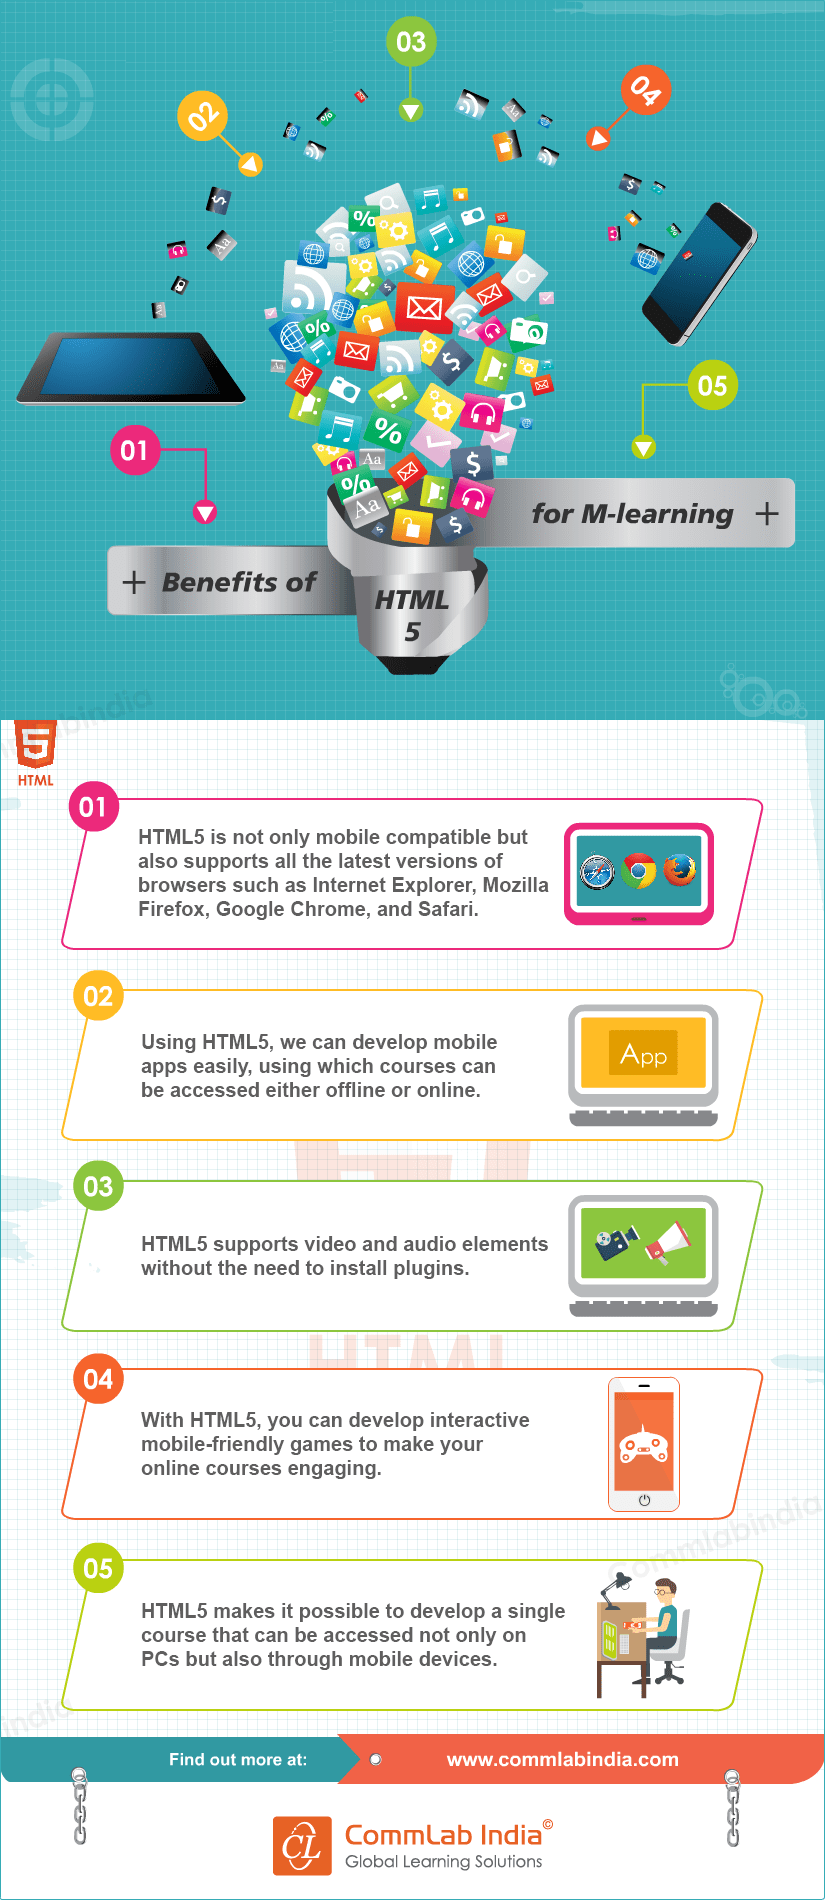 Benefits of Using HTML5 for M-learning[Infographic]